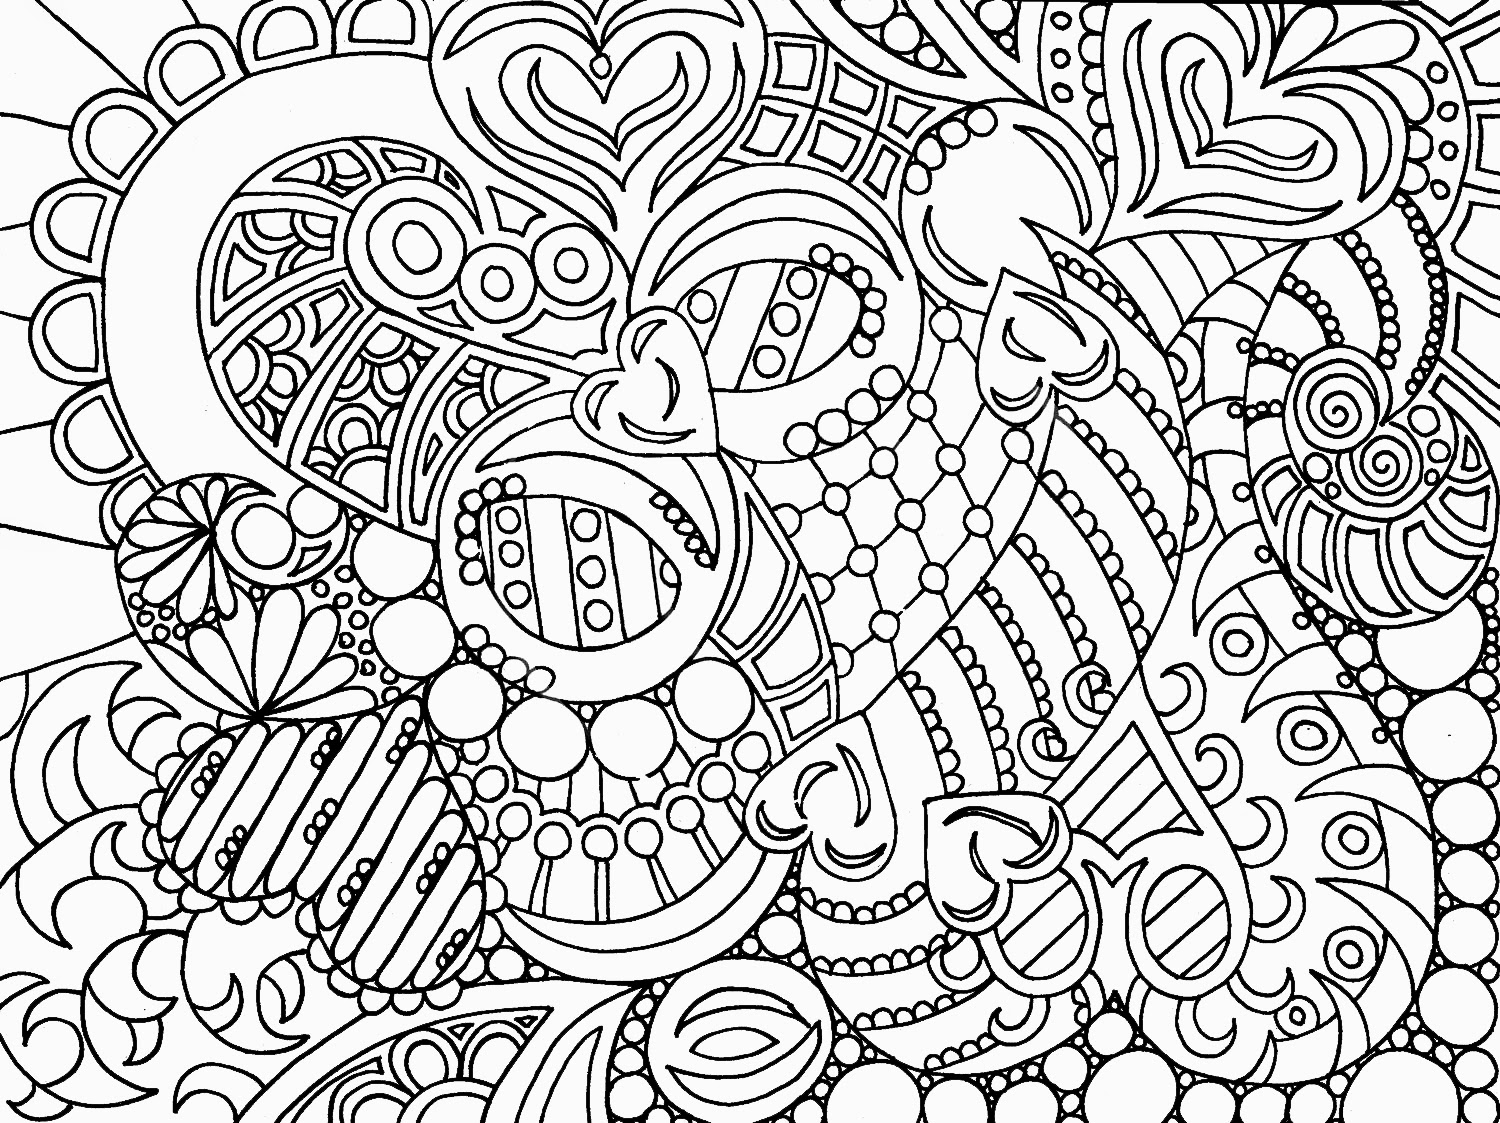 you can get abstract art coloring pages for adult here